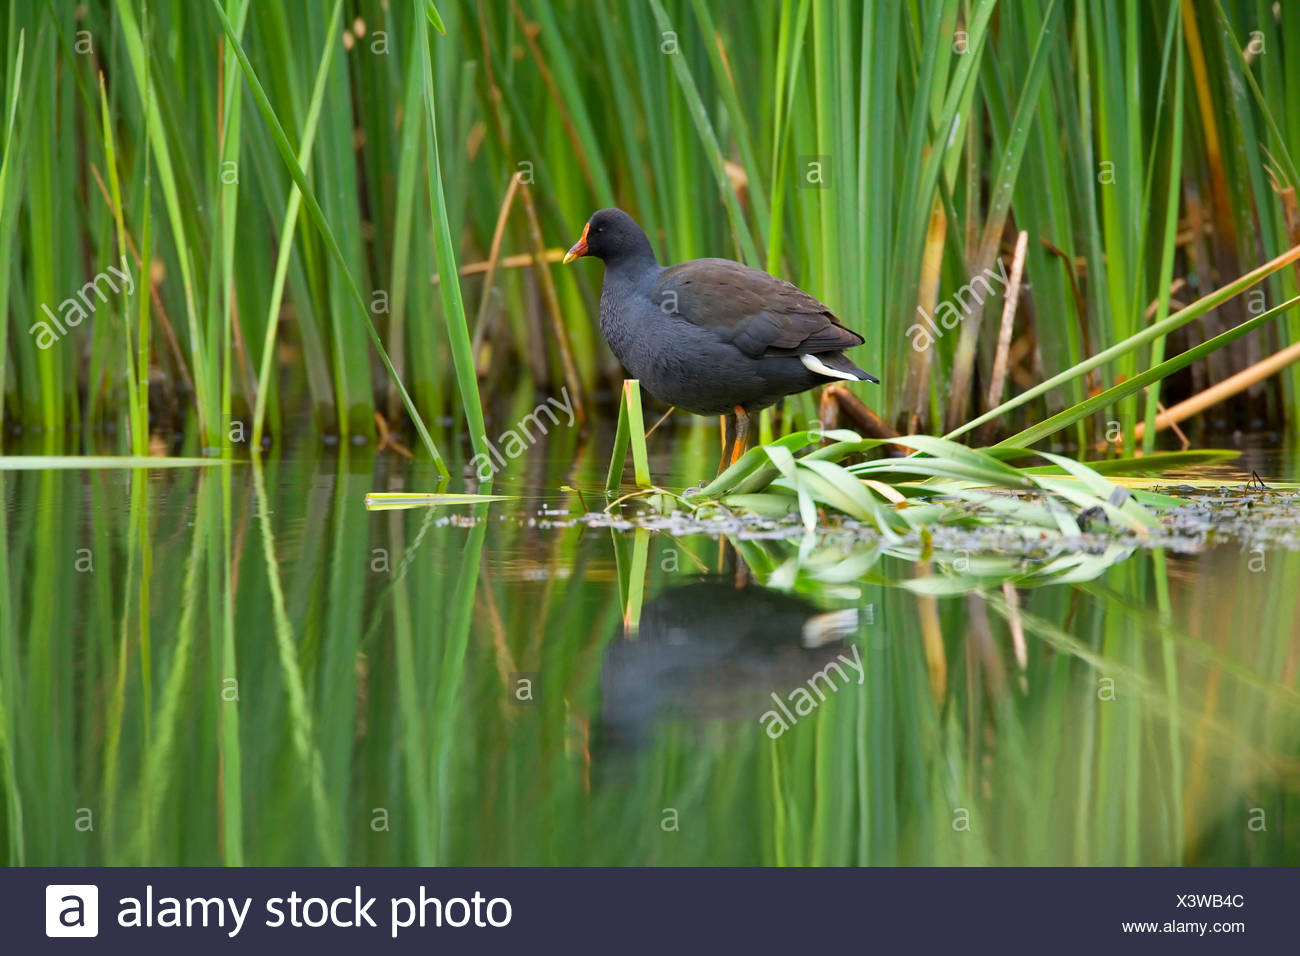 dusky moorhen (Gallinula tenebrosa), adult sits on shore vegetation looking out. The body of the moorhen reflects in the calm water's surface, Australia, Northern Territory, West MacDonnell National Park, Ellery Creek Big Hole - Stock Image